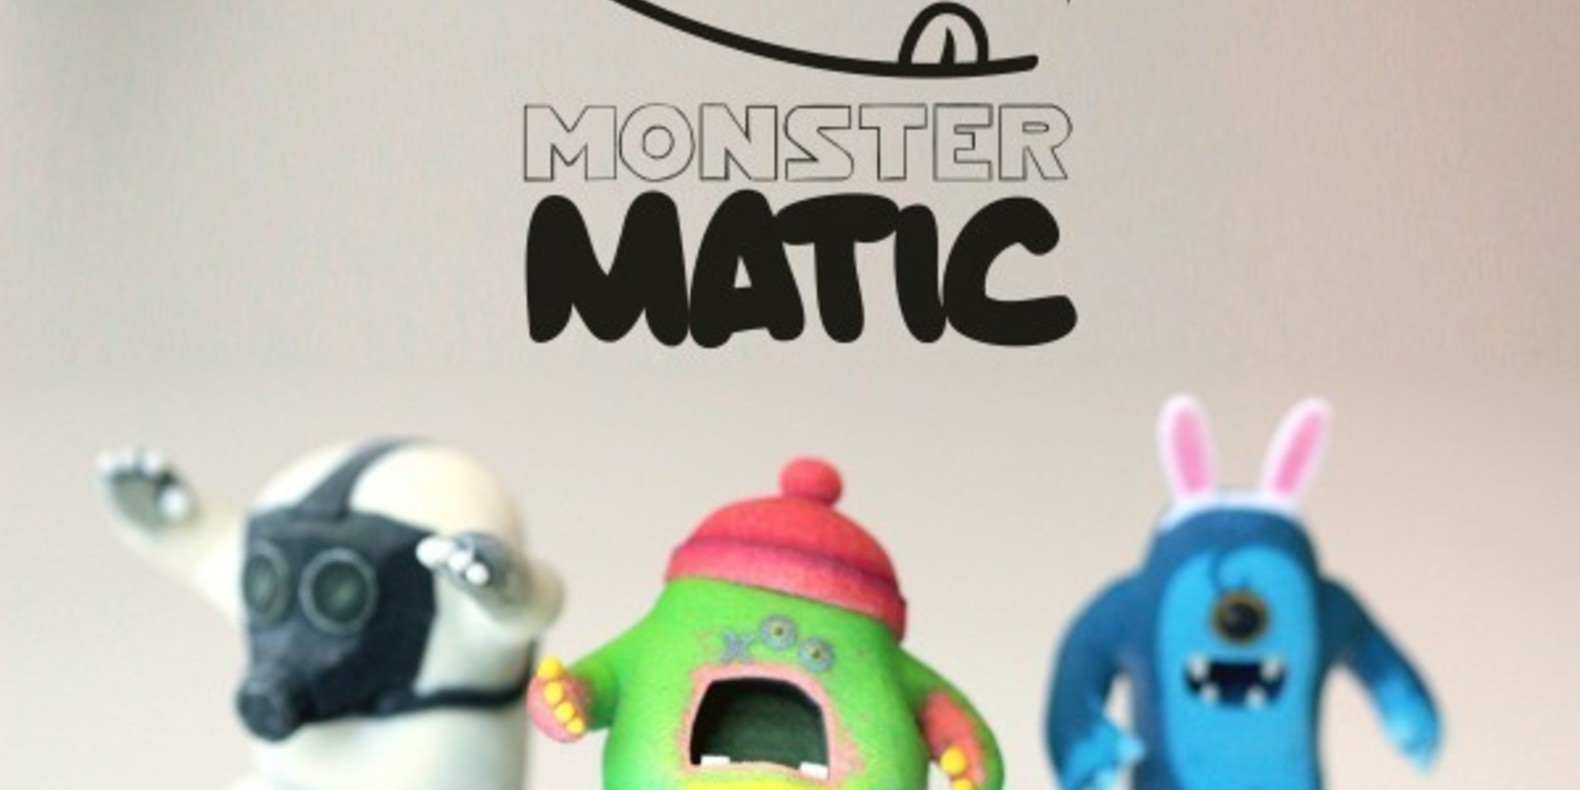 monstermatic game 3D printing printer fichier 3D object cults cults 3D kickstarter 4